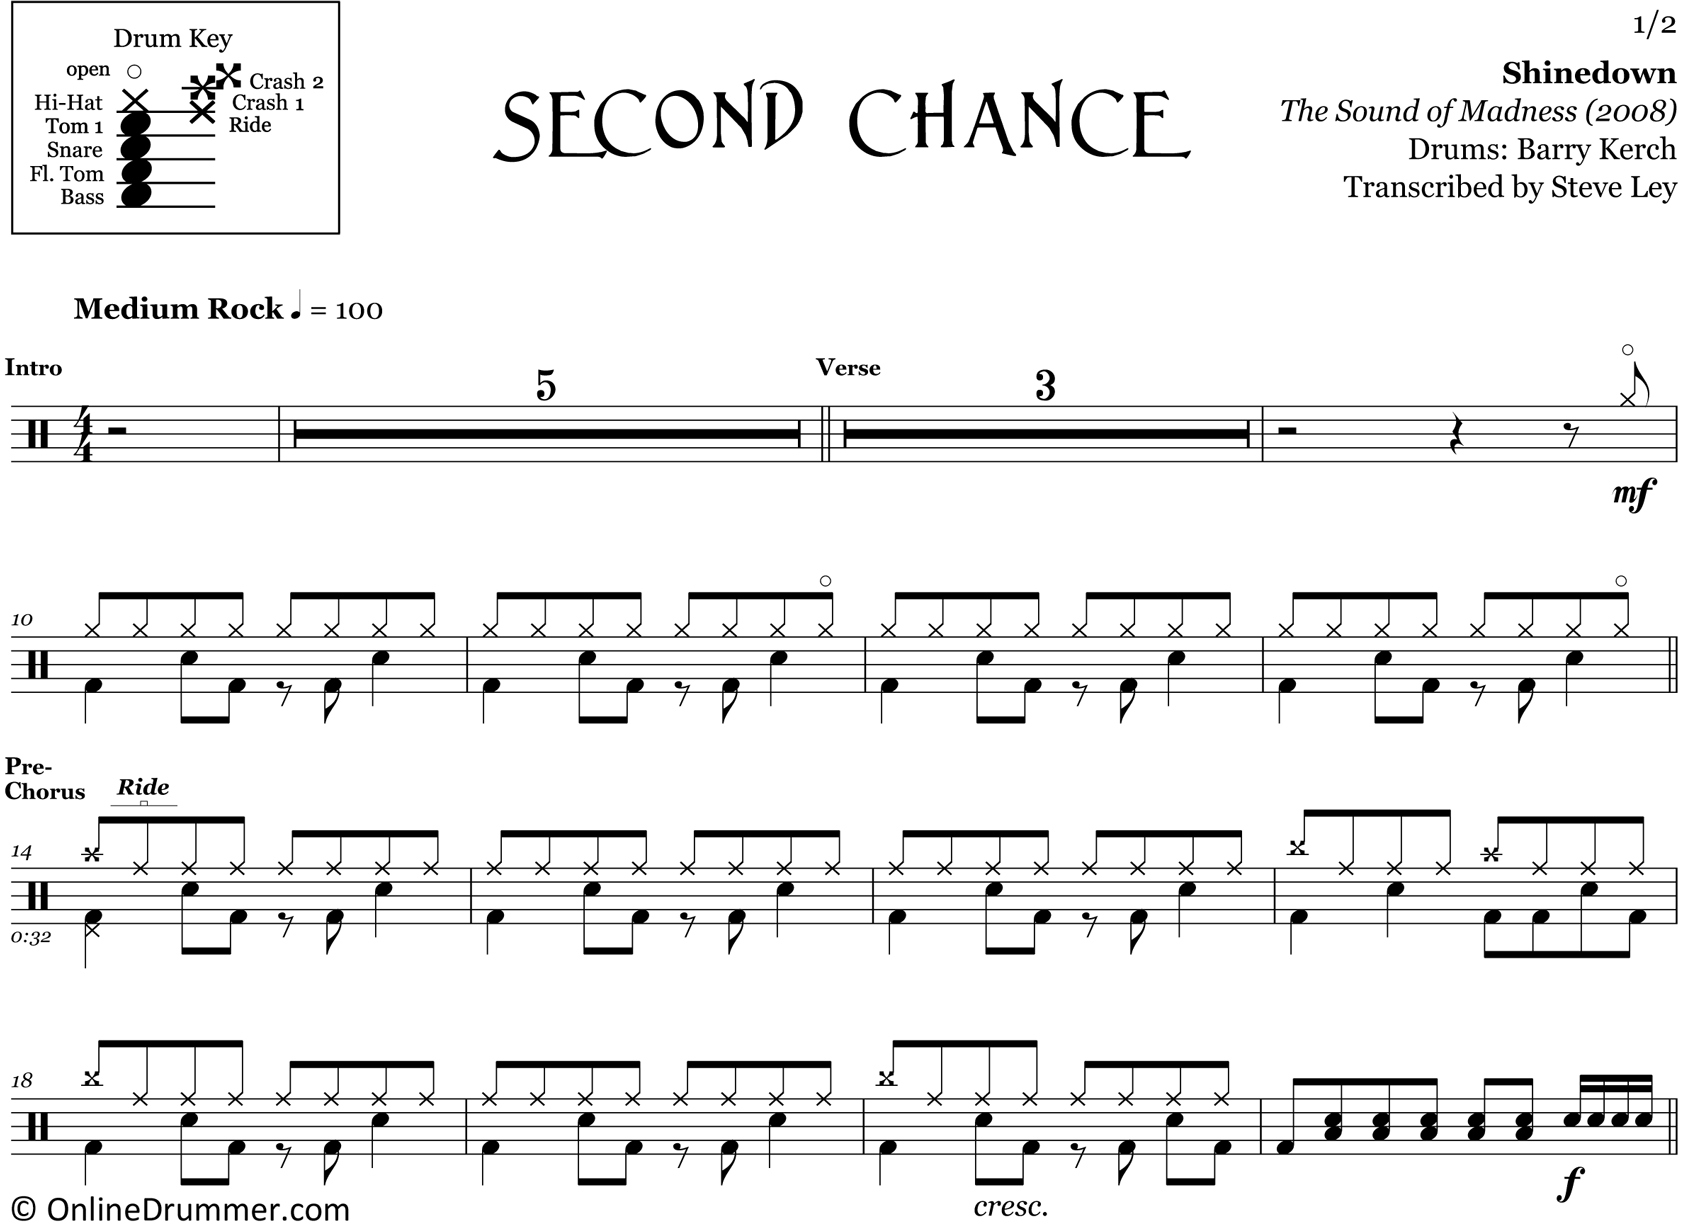 Second Chance - Shinedown - Drum Sheet Music